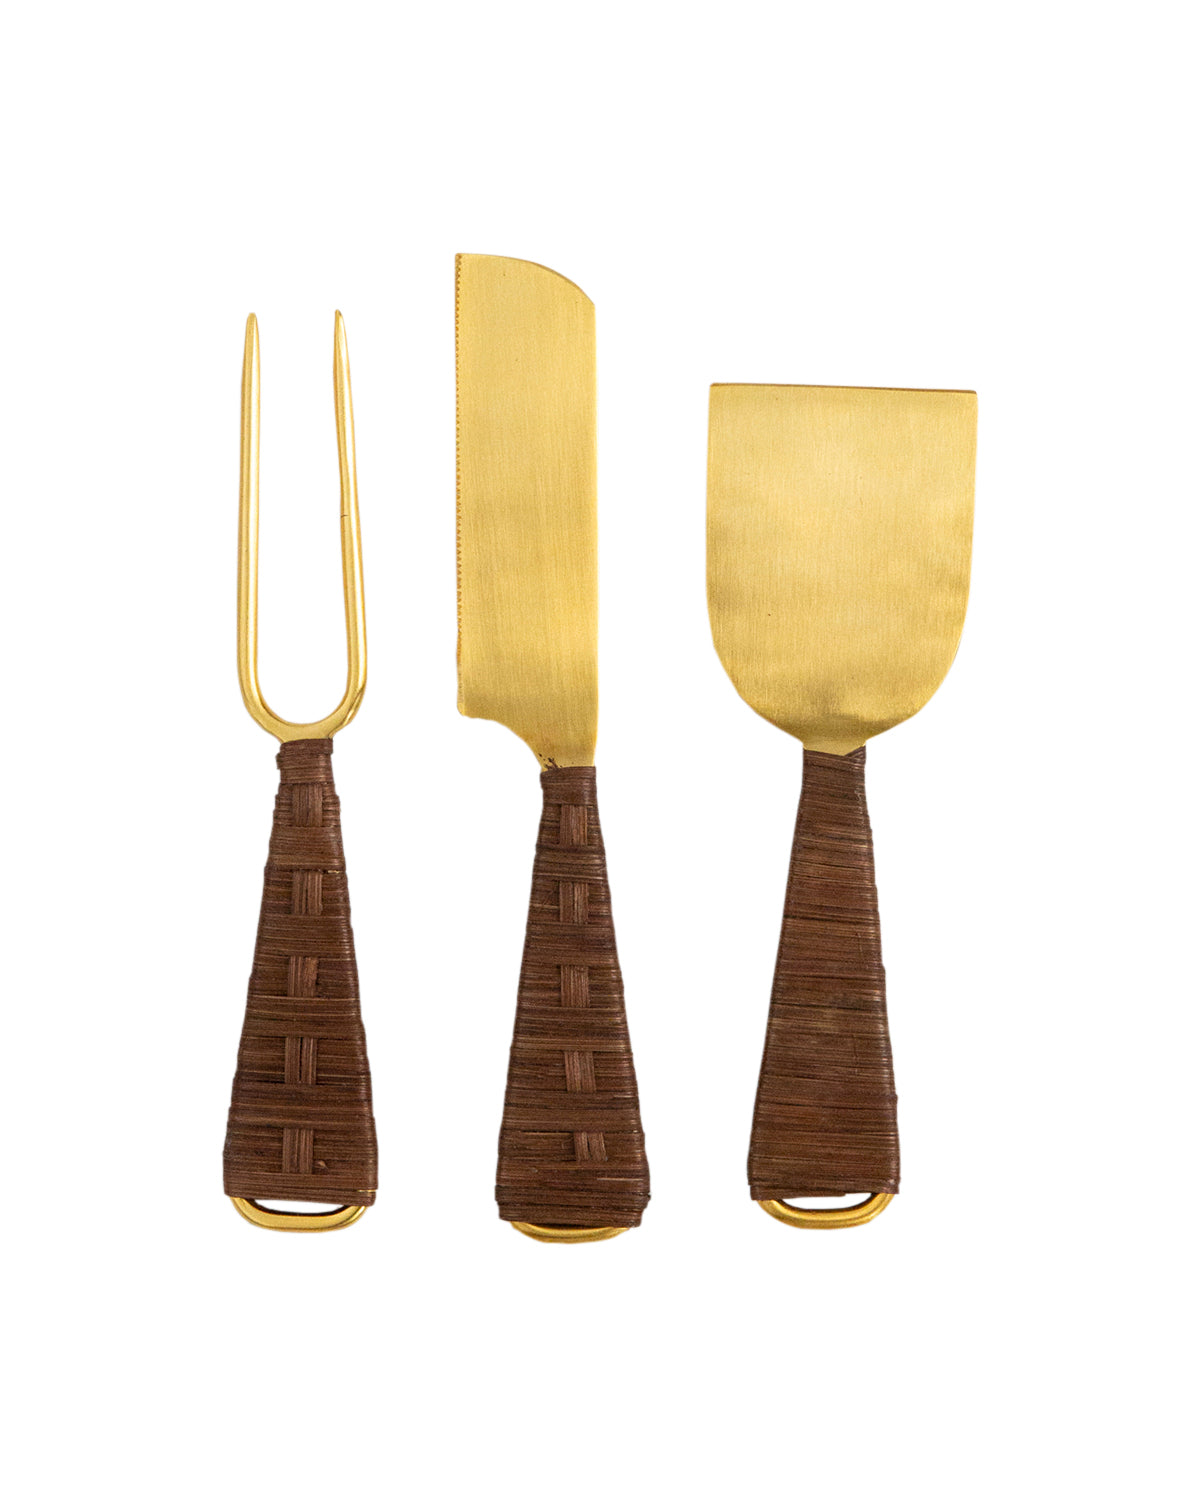 Rattan Handled Cheese Utensils (Set of 3)